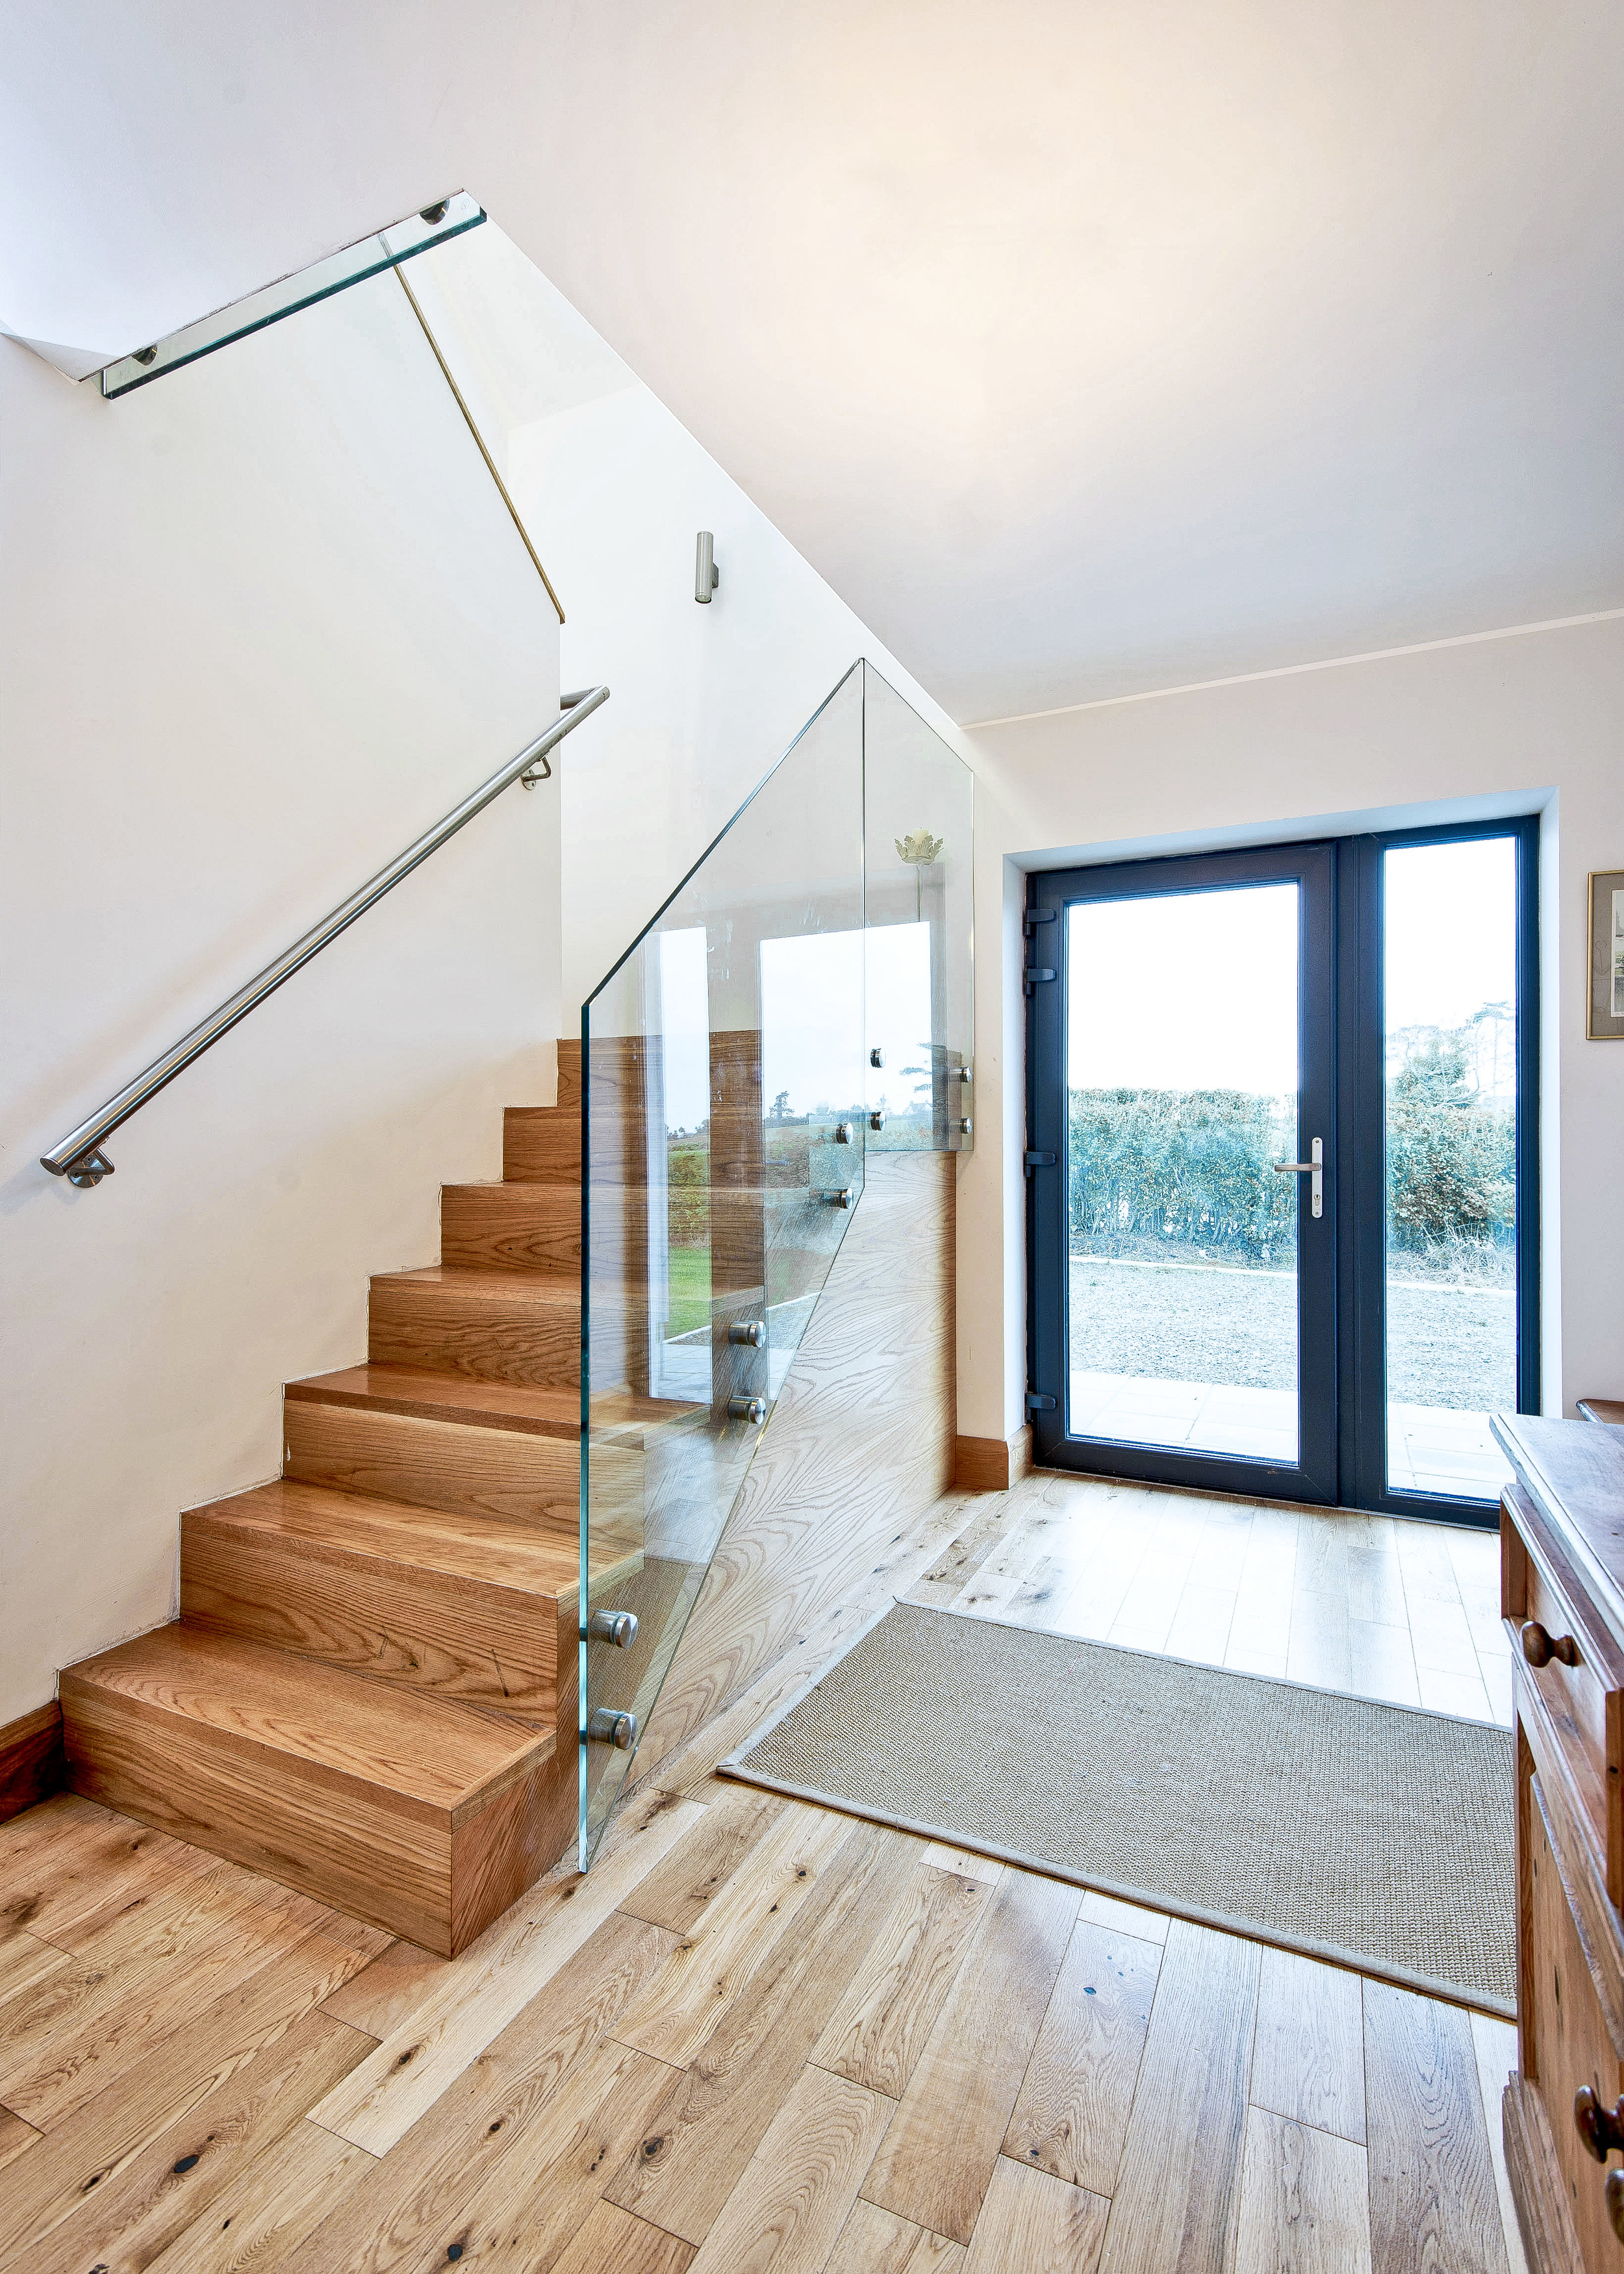 Paul_McAlister_Architects_Passive_House_Stairs.jpg